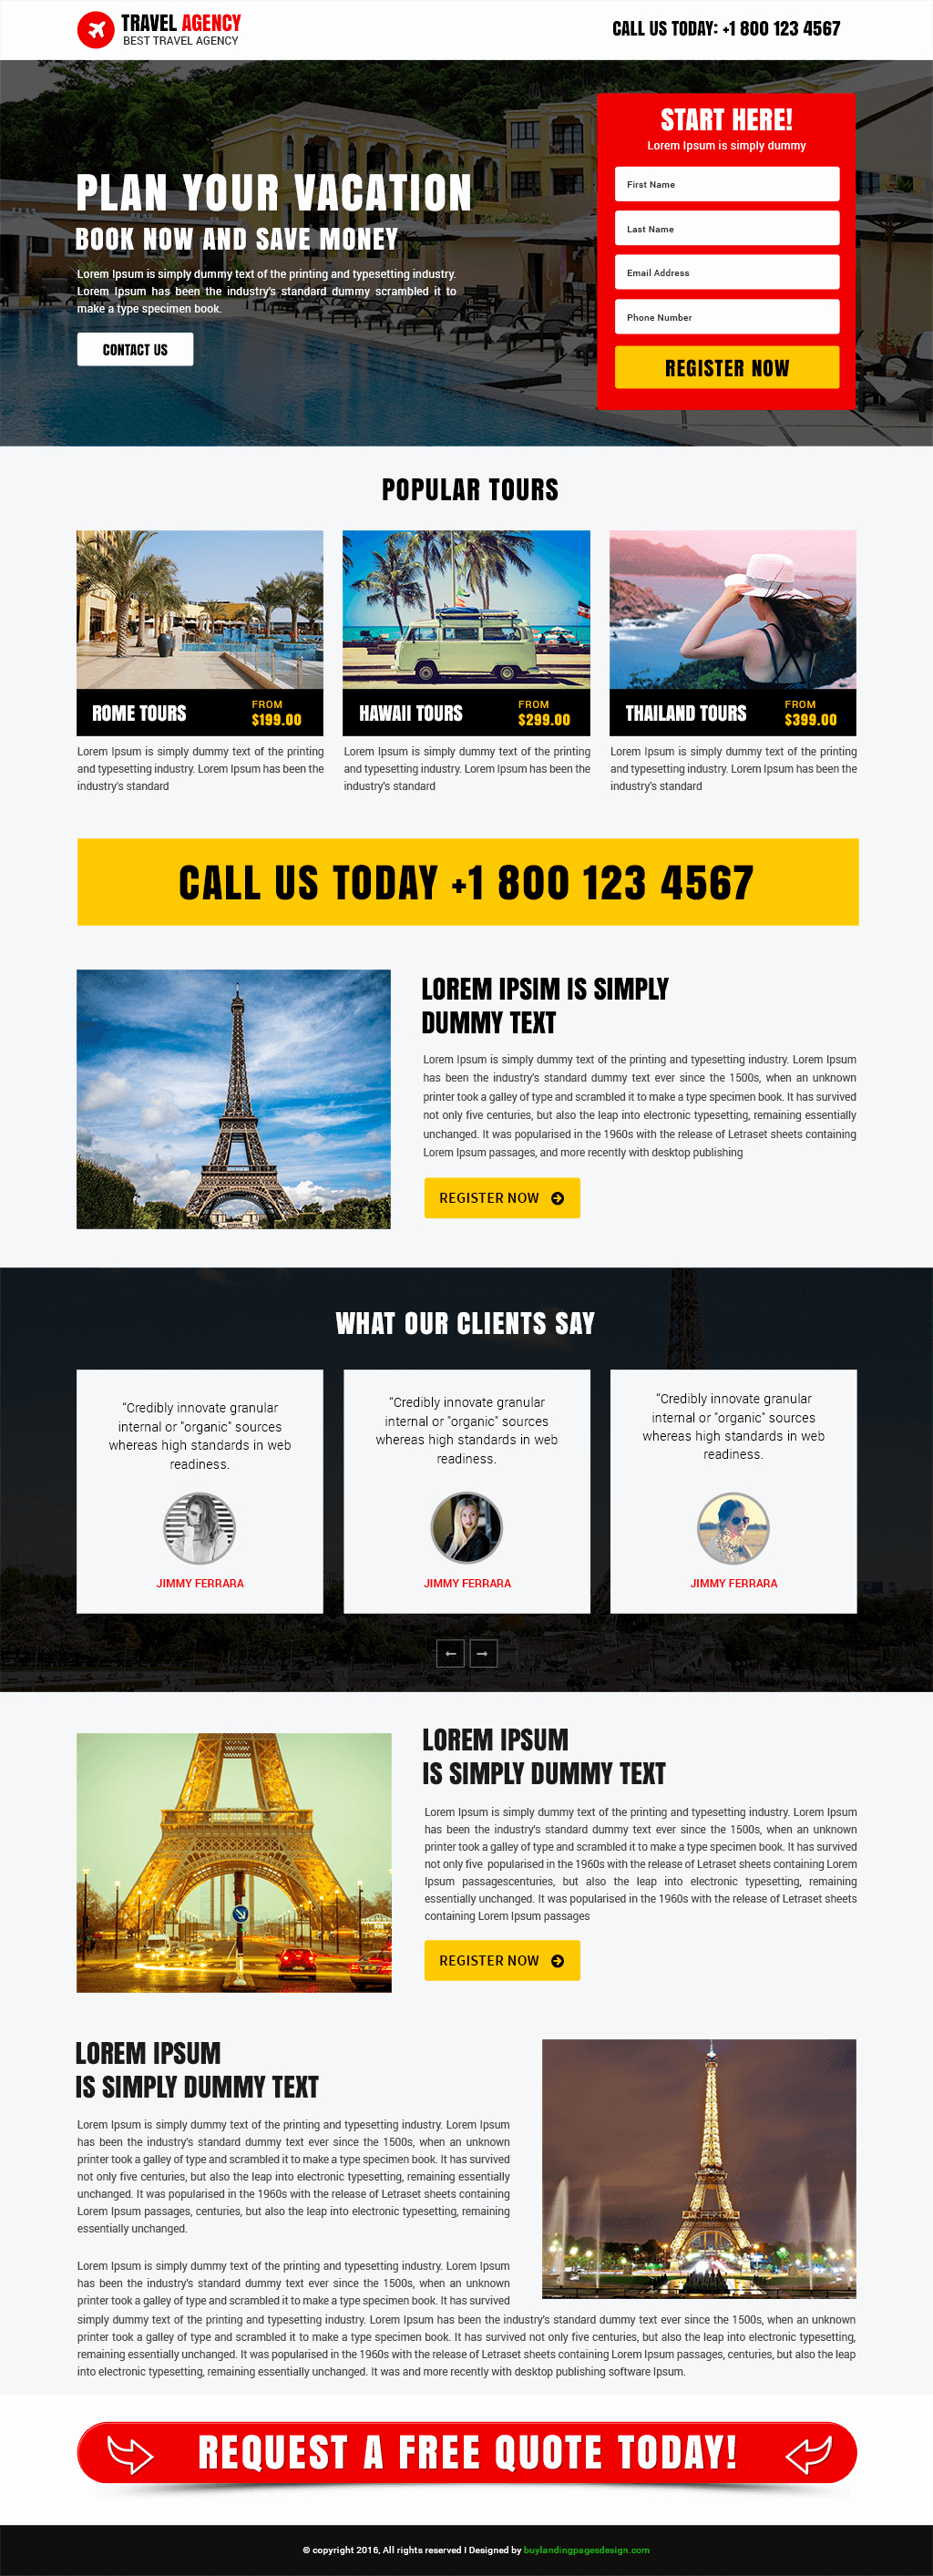 Travel Agent Quote Template Fresh Professional Travel Agency Template Buy Landing Pages Design